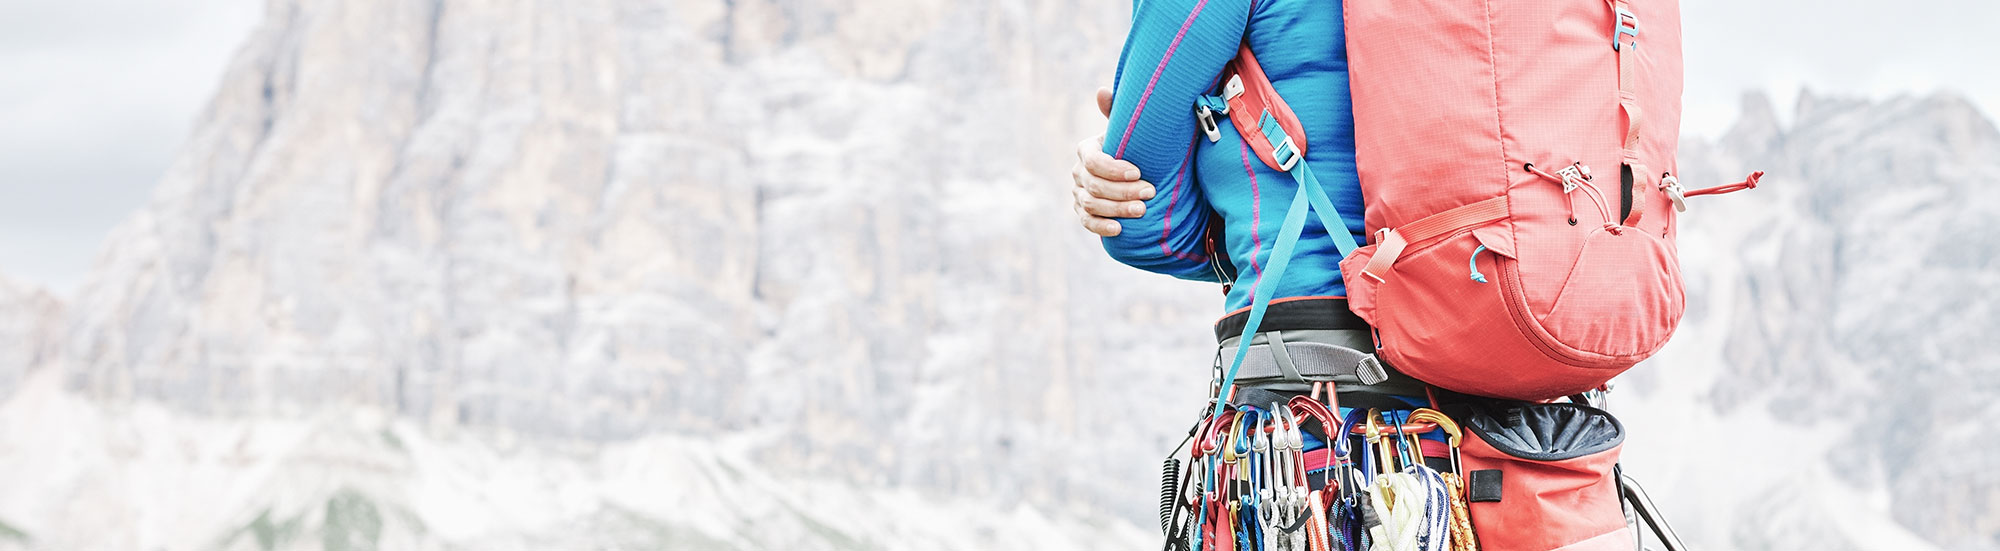 A rock climber in professional gear looking at a mountain